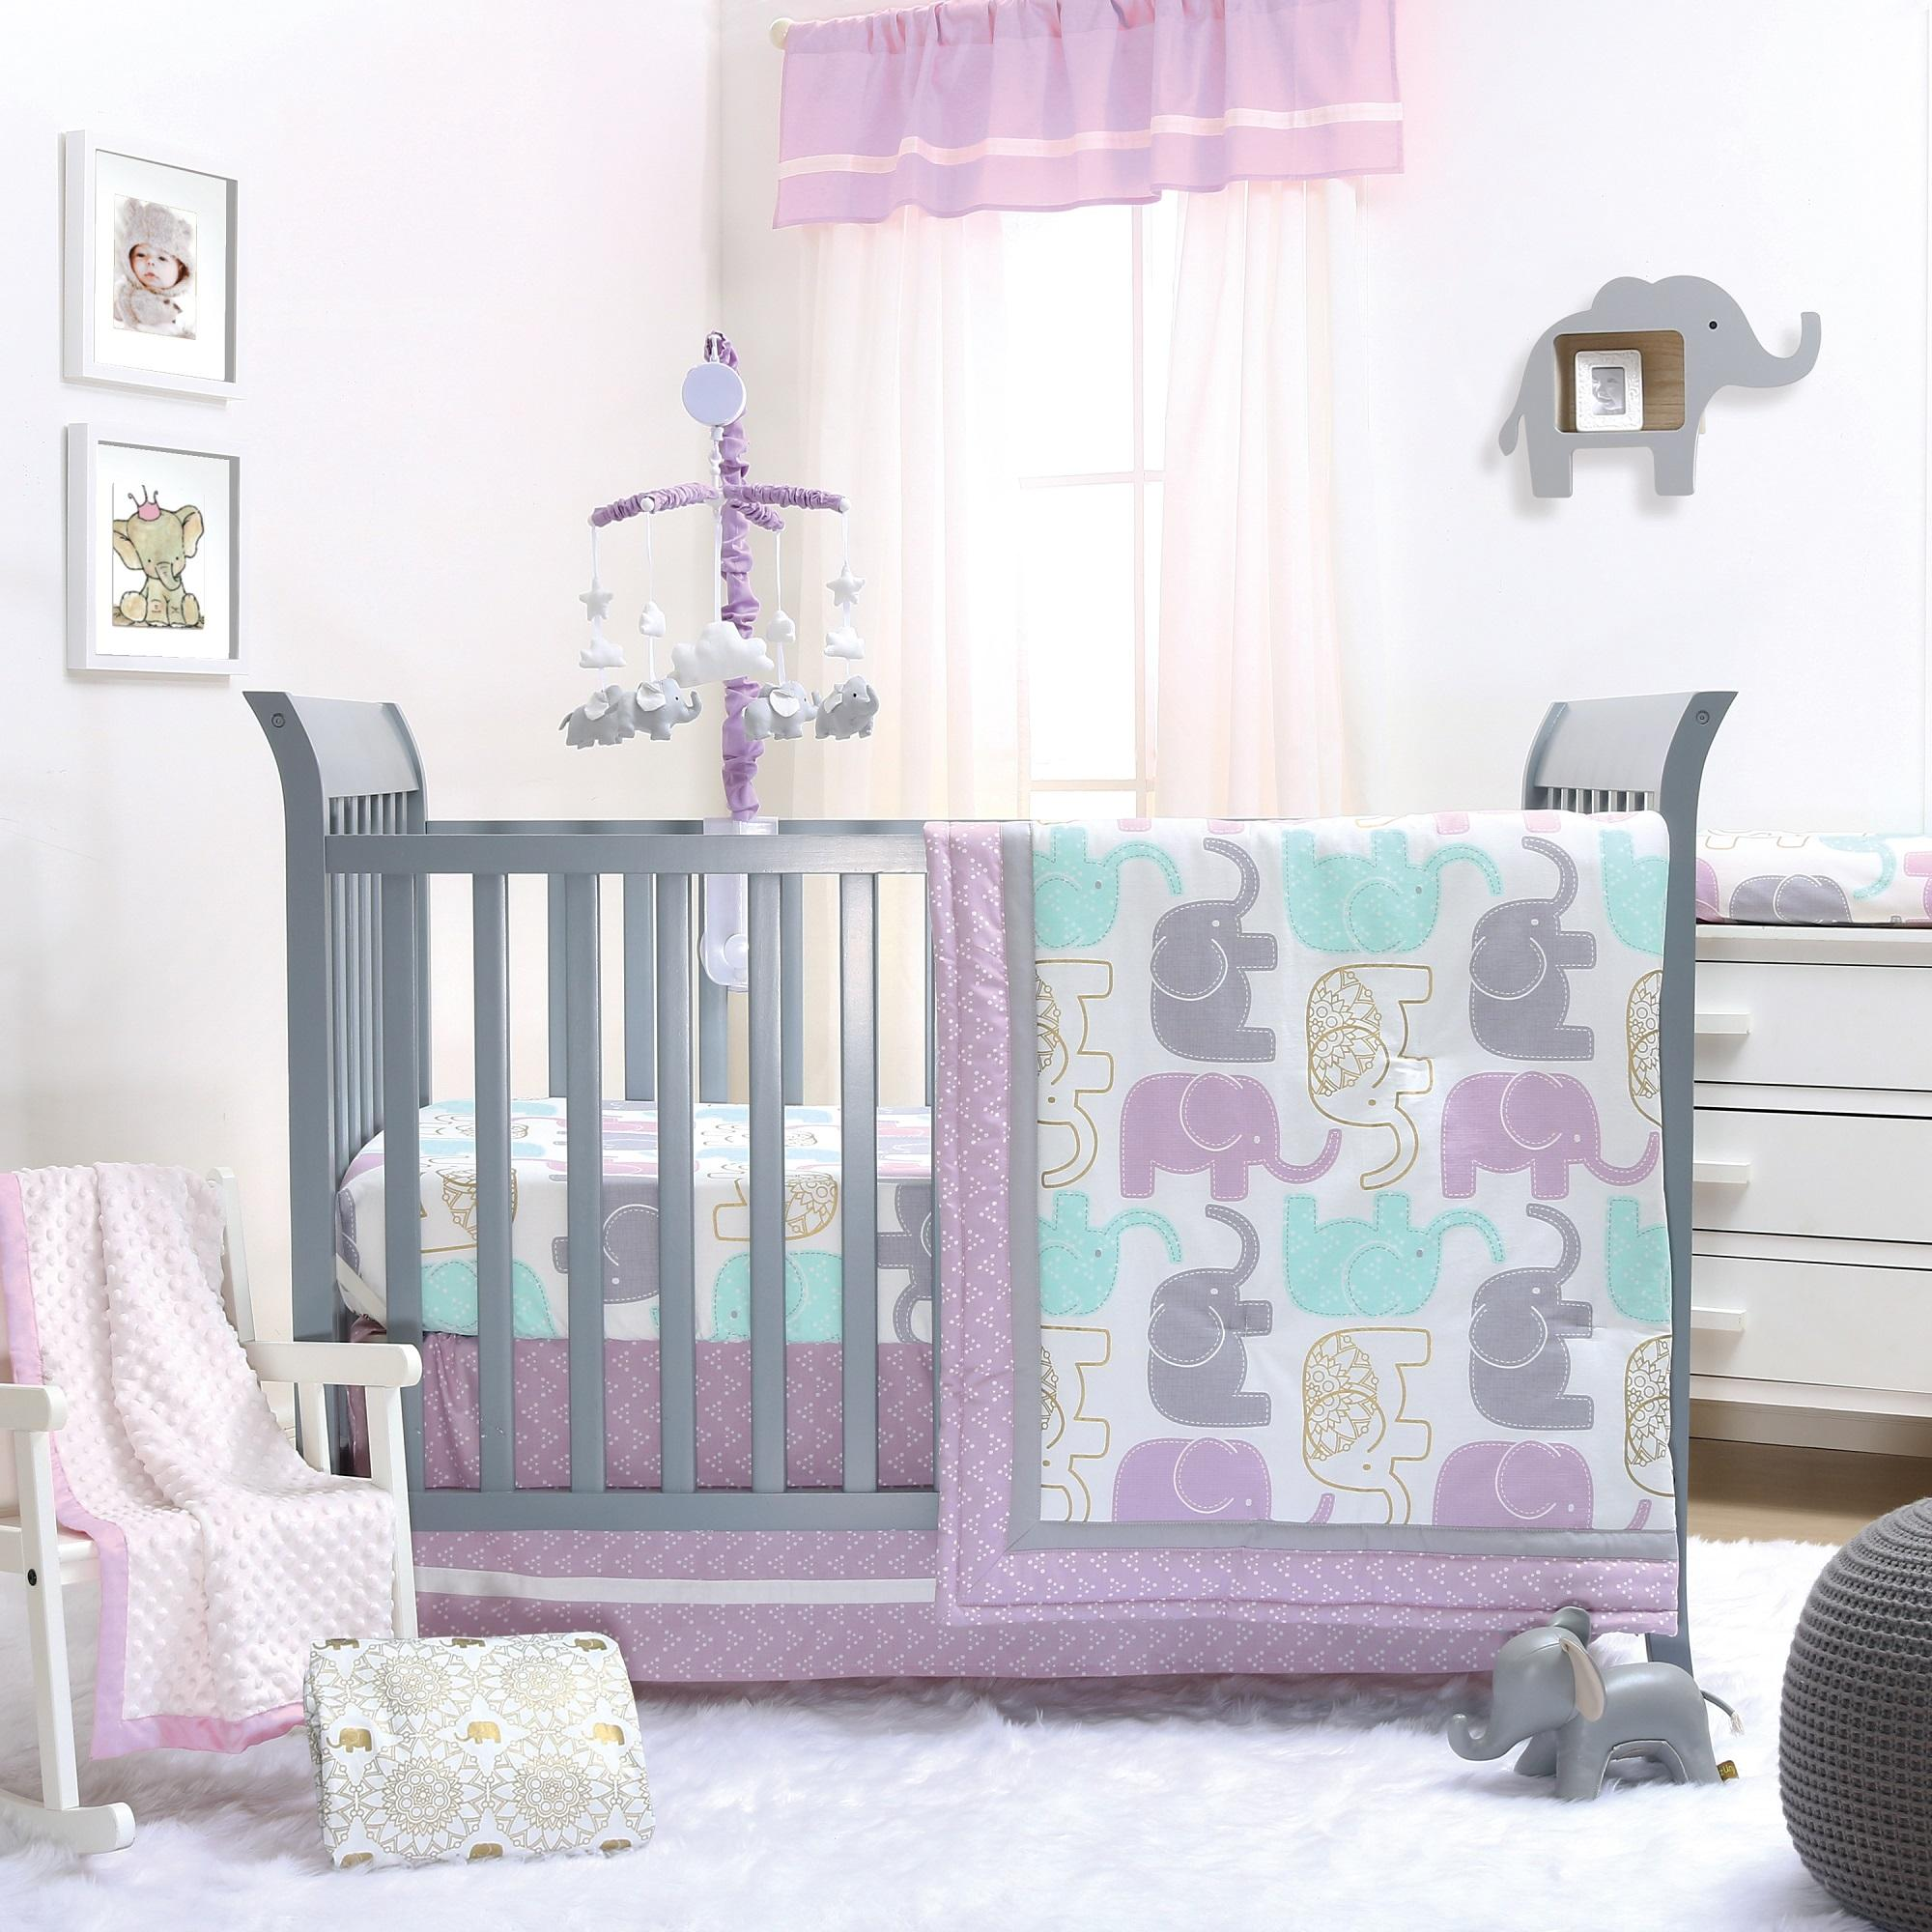 ah in crib design bed your babybedding pink cheetah bedding regarding top calm images bodacious baby girls own with home witching image set green purple ideas sets for along